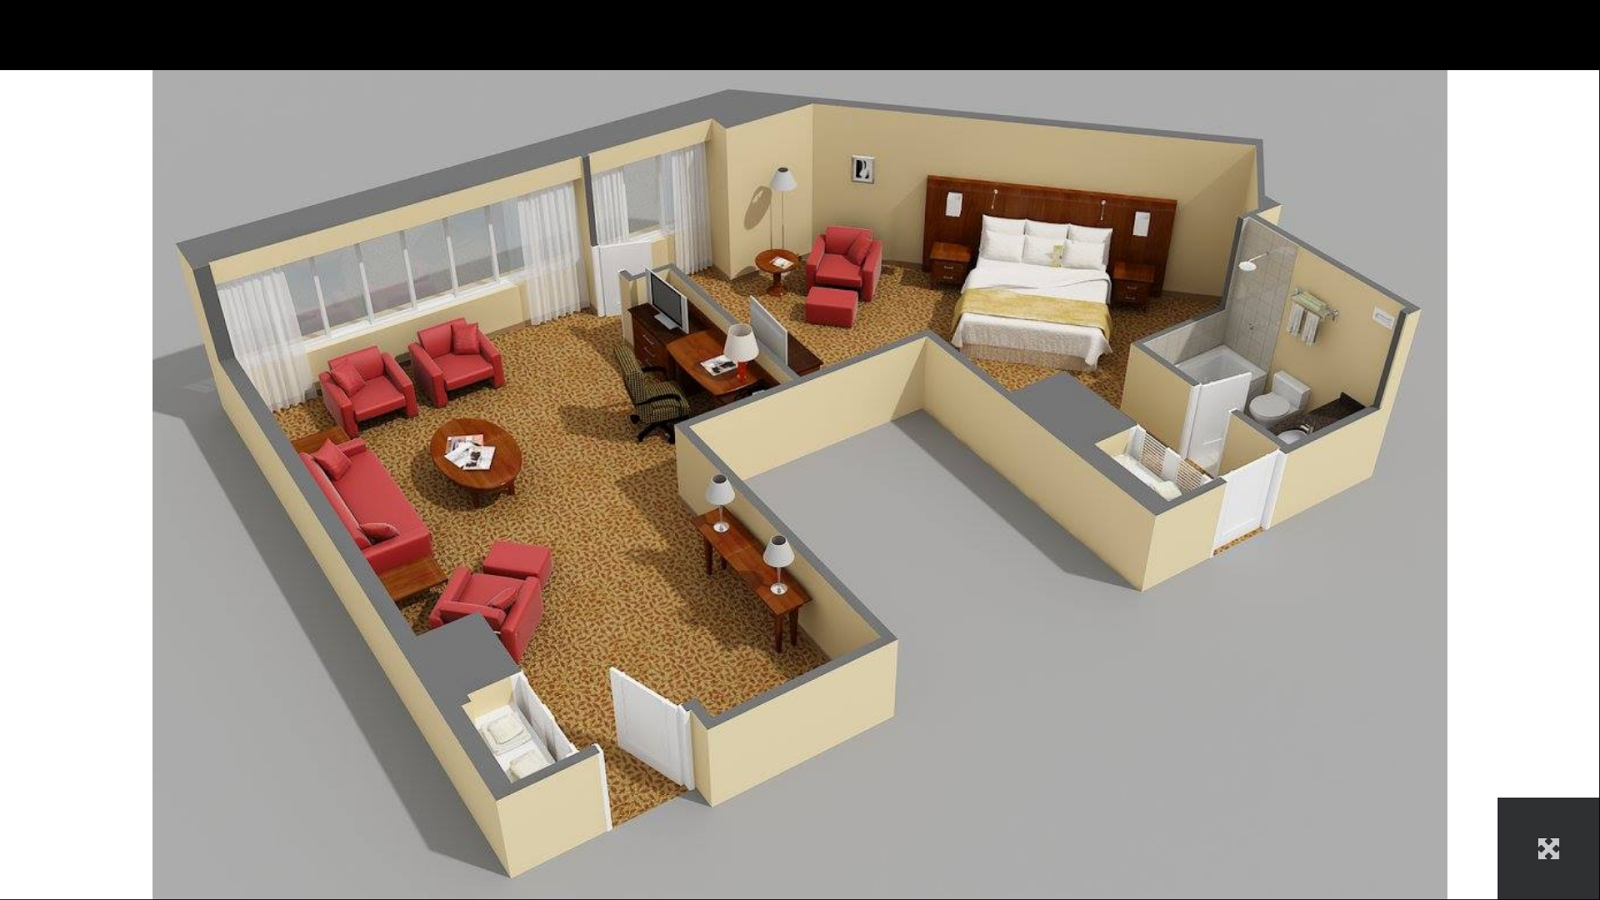 3d house plans android apps on google play 3d house plans screenshot malvernweather Images